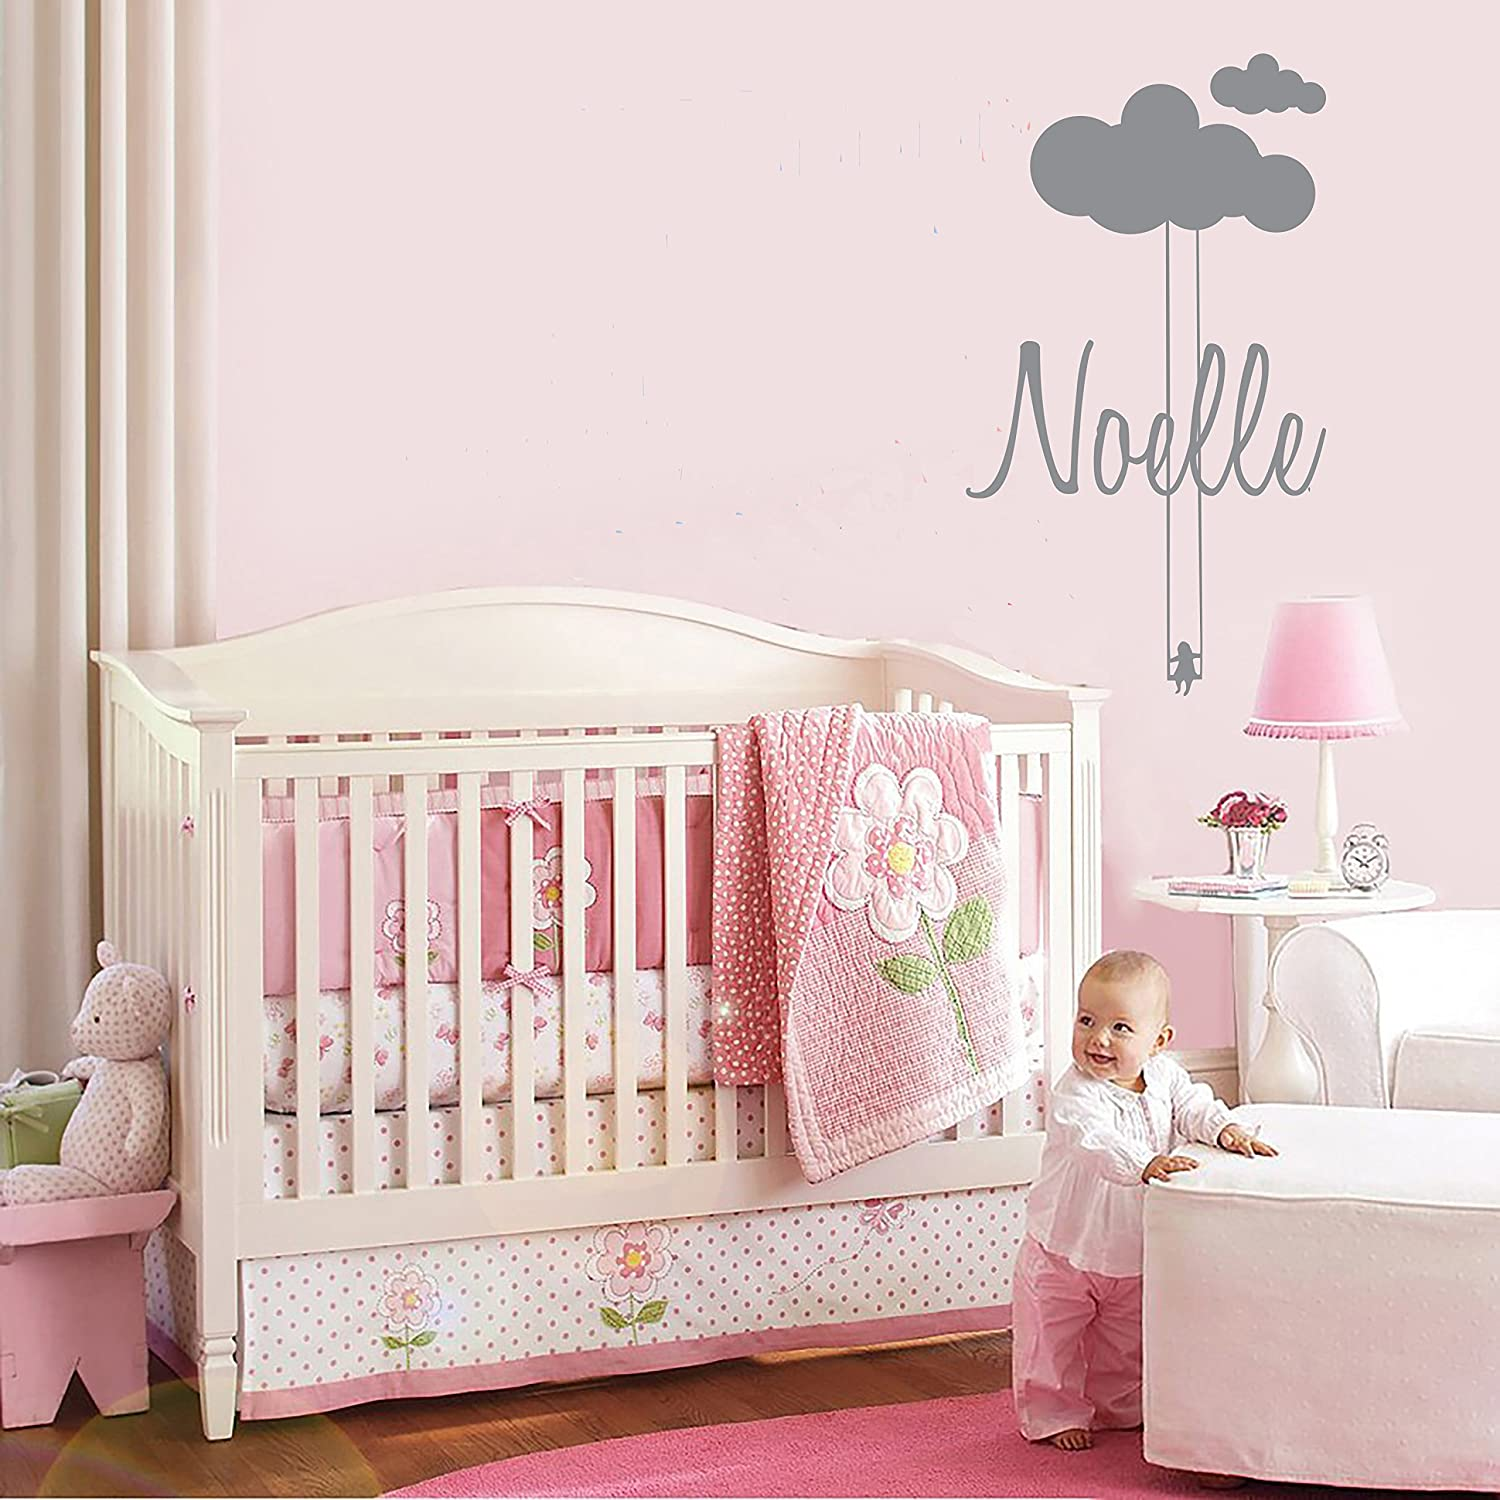 Wonderful Custom Name Clouds And Swing   Baby Girl   Nursery Wall Decal For Baby Room  Decorations   Mural Wall Decal Sticker For Home Childrenu0027s Bedroom (MM117)  (Wide ...